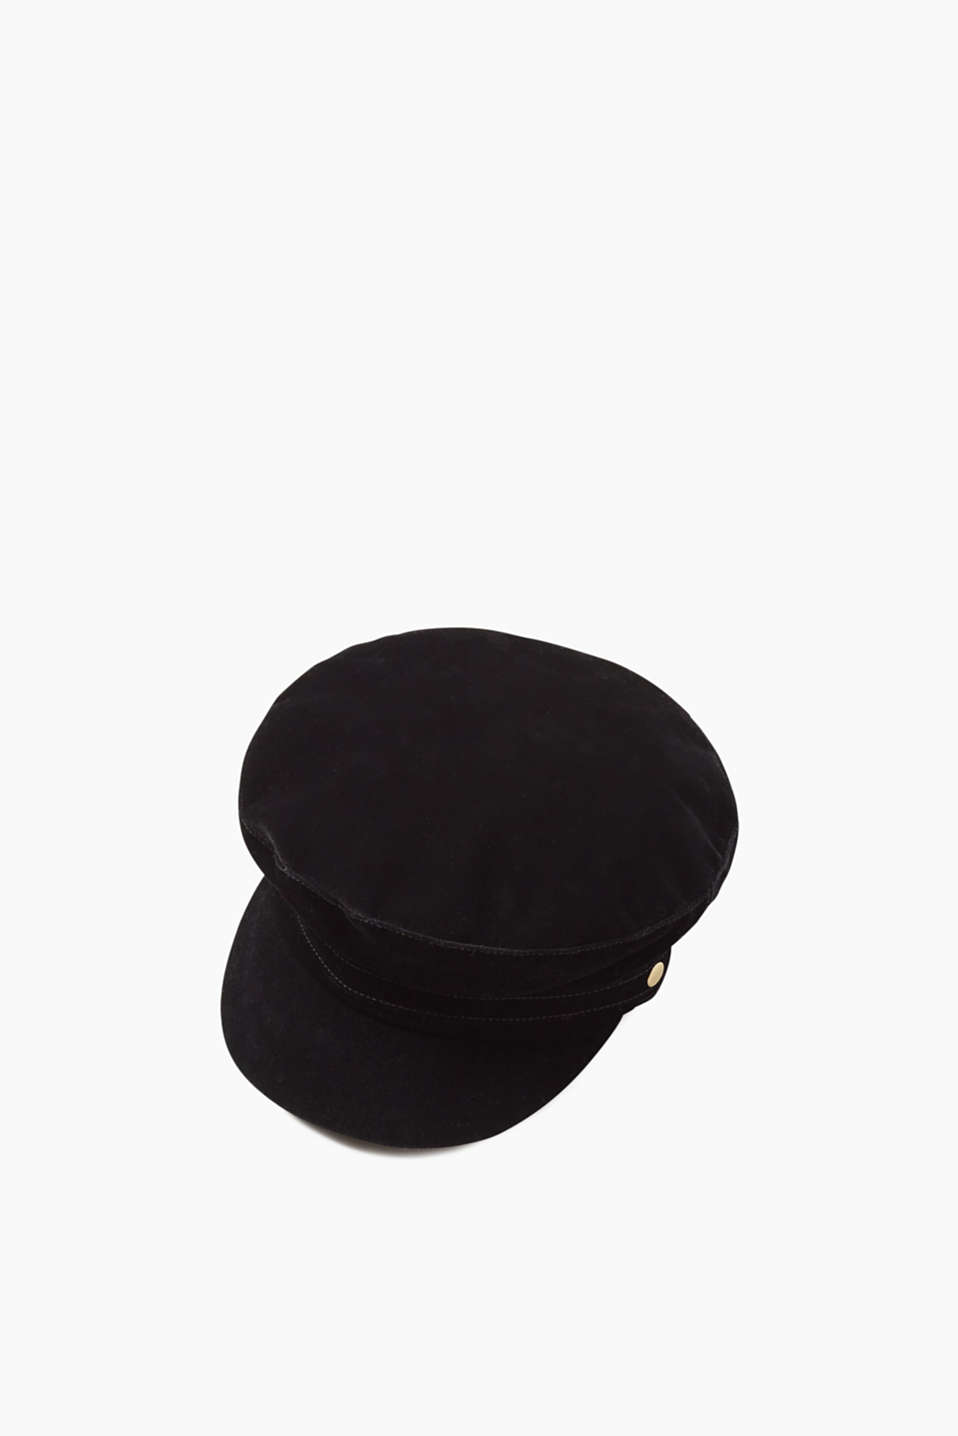 Whether for a military or rock-chic look – this cap impresses with its cool design and edgy badges